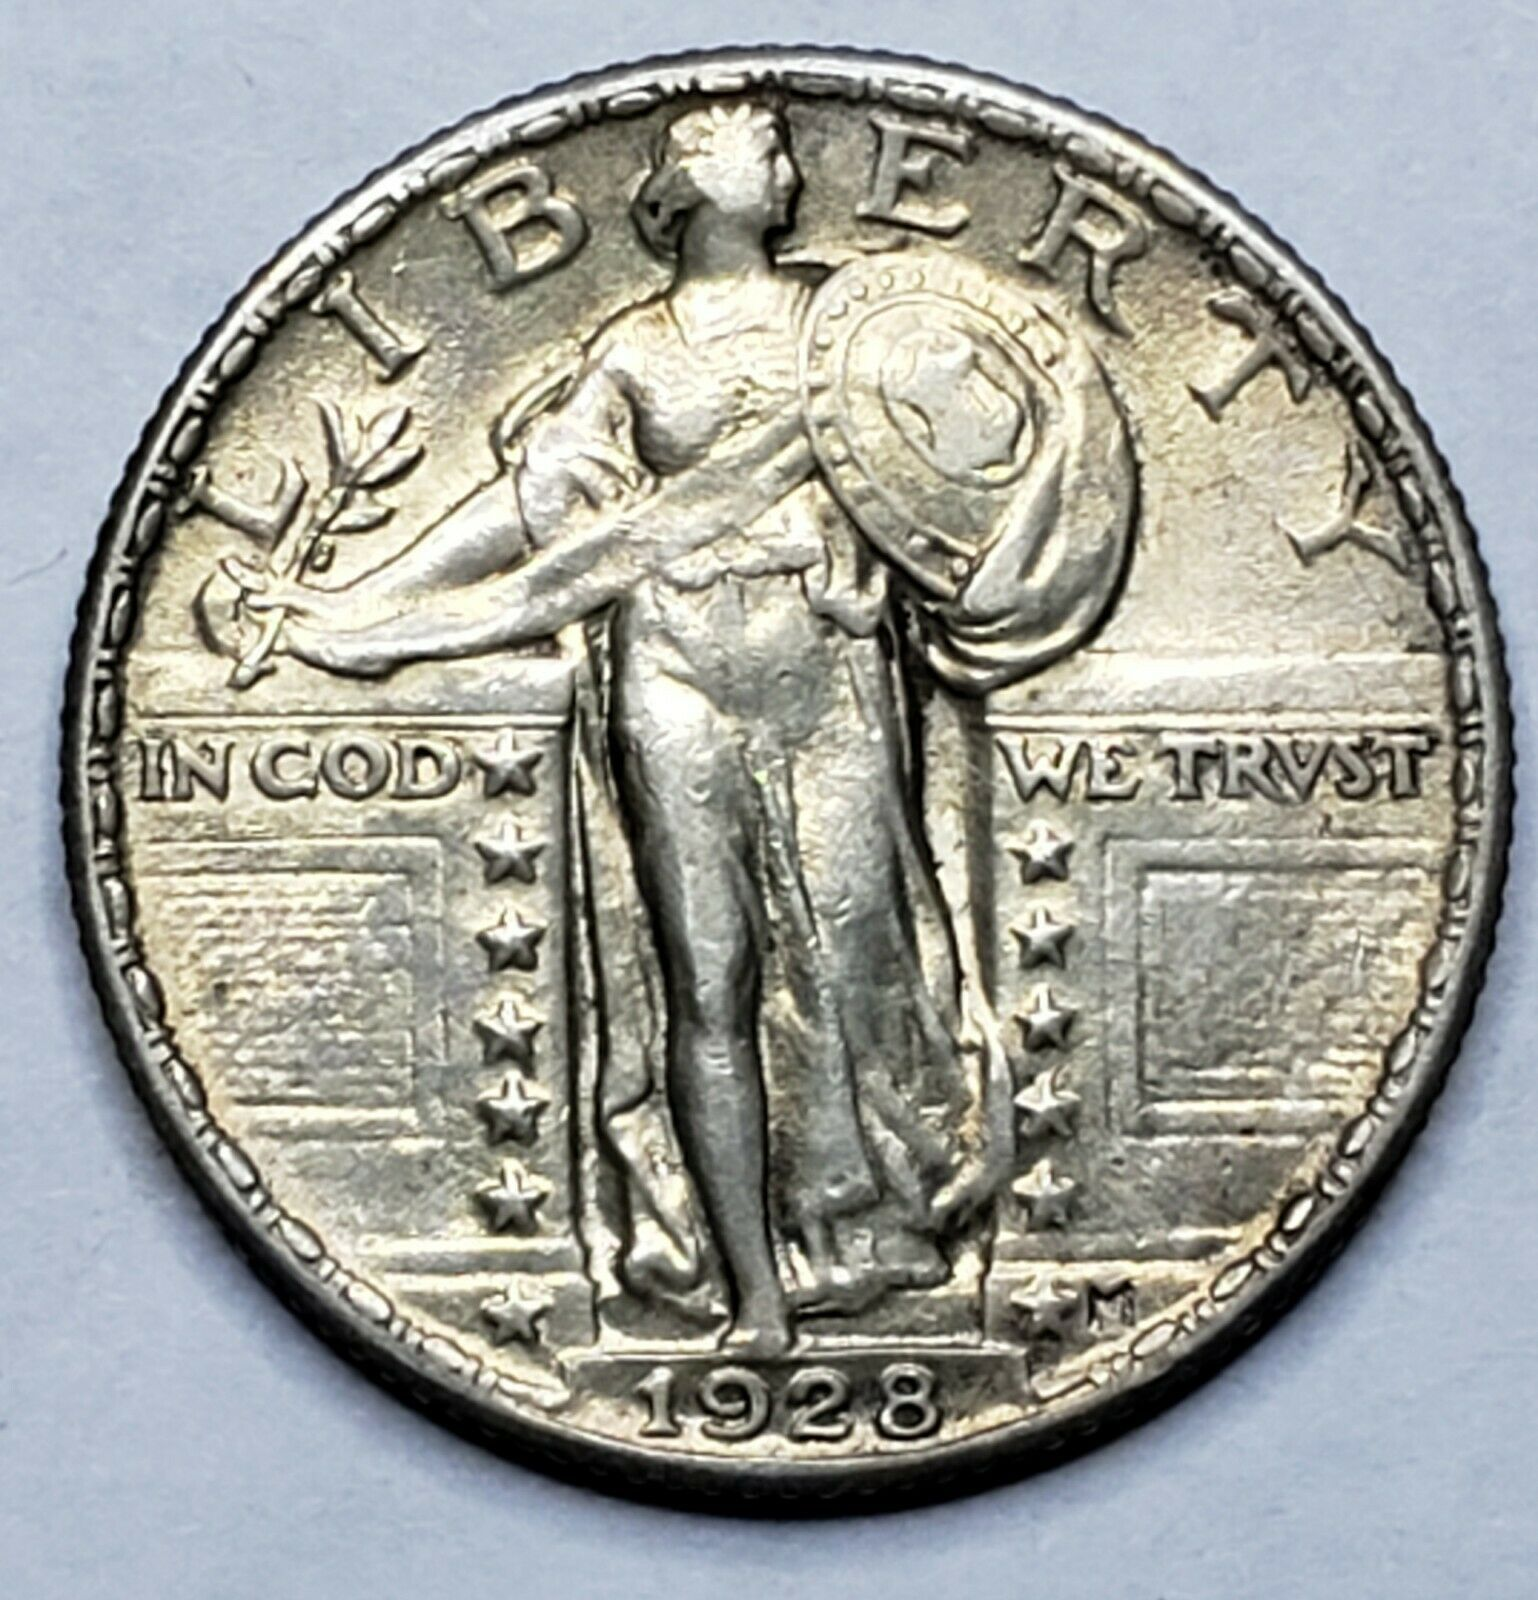 1928 Standing Liberty Silver Quarter Coin Lot 519-80